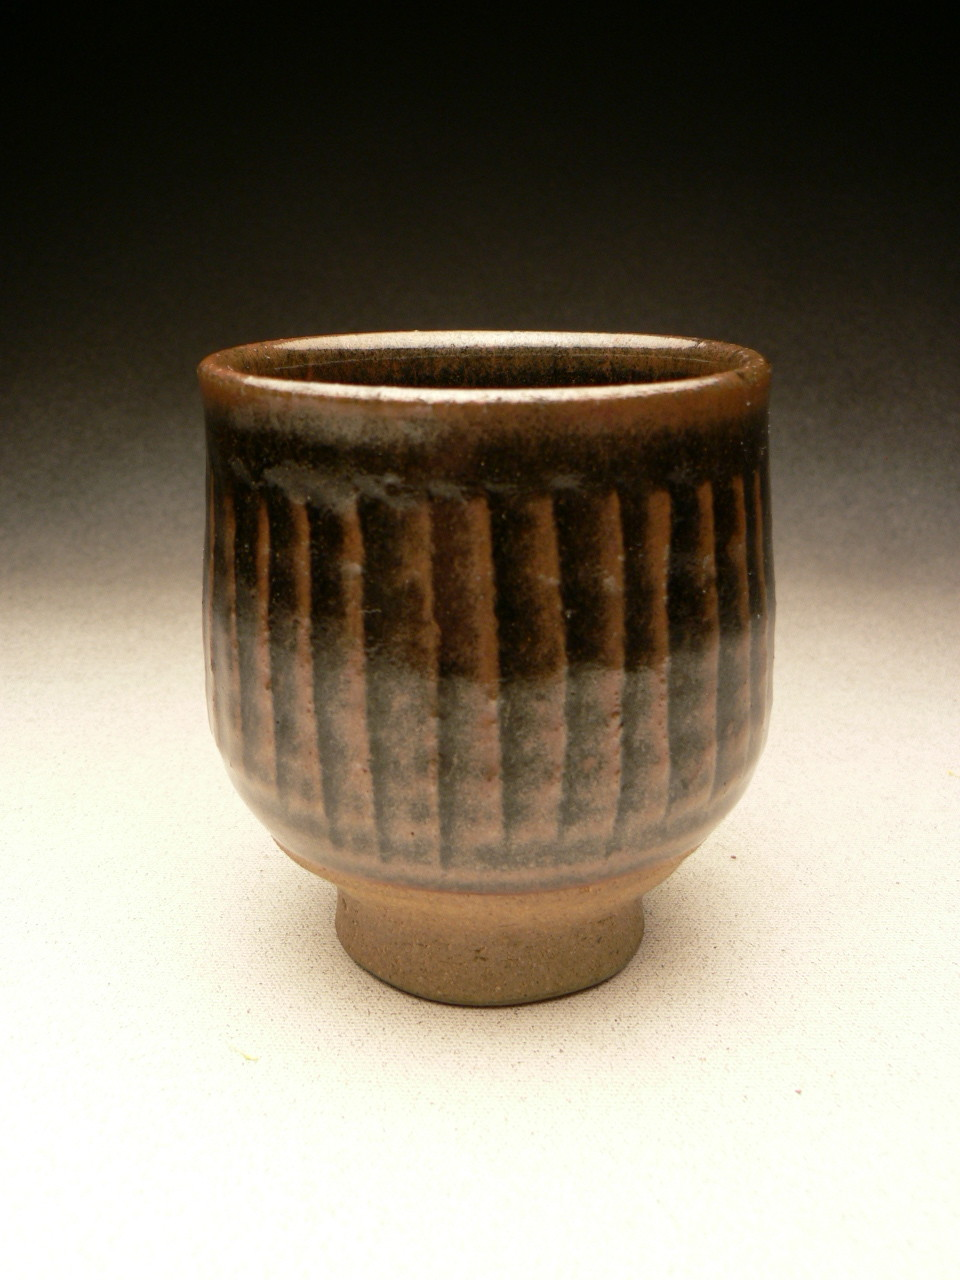 MIREK SMISEK - VINTAGE YUNOMI, STONEWARE, FLUTED, BROWN-BLACK TENMOKU GLAZE, POTTER'S STAMP - 9.5cmH x 9cmD, 0.2kg - NZ$110 - #MSR3.....SOLD